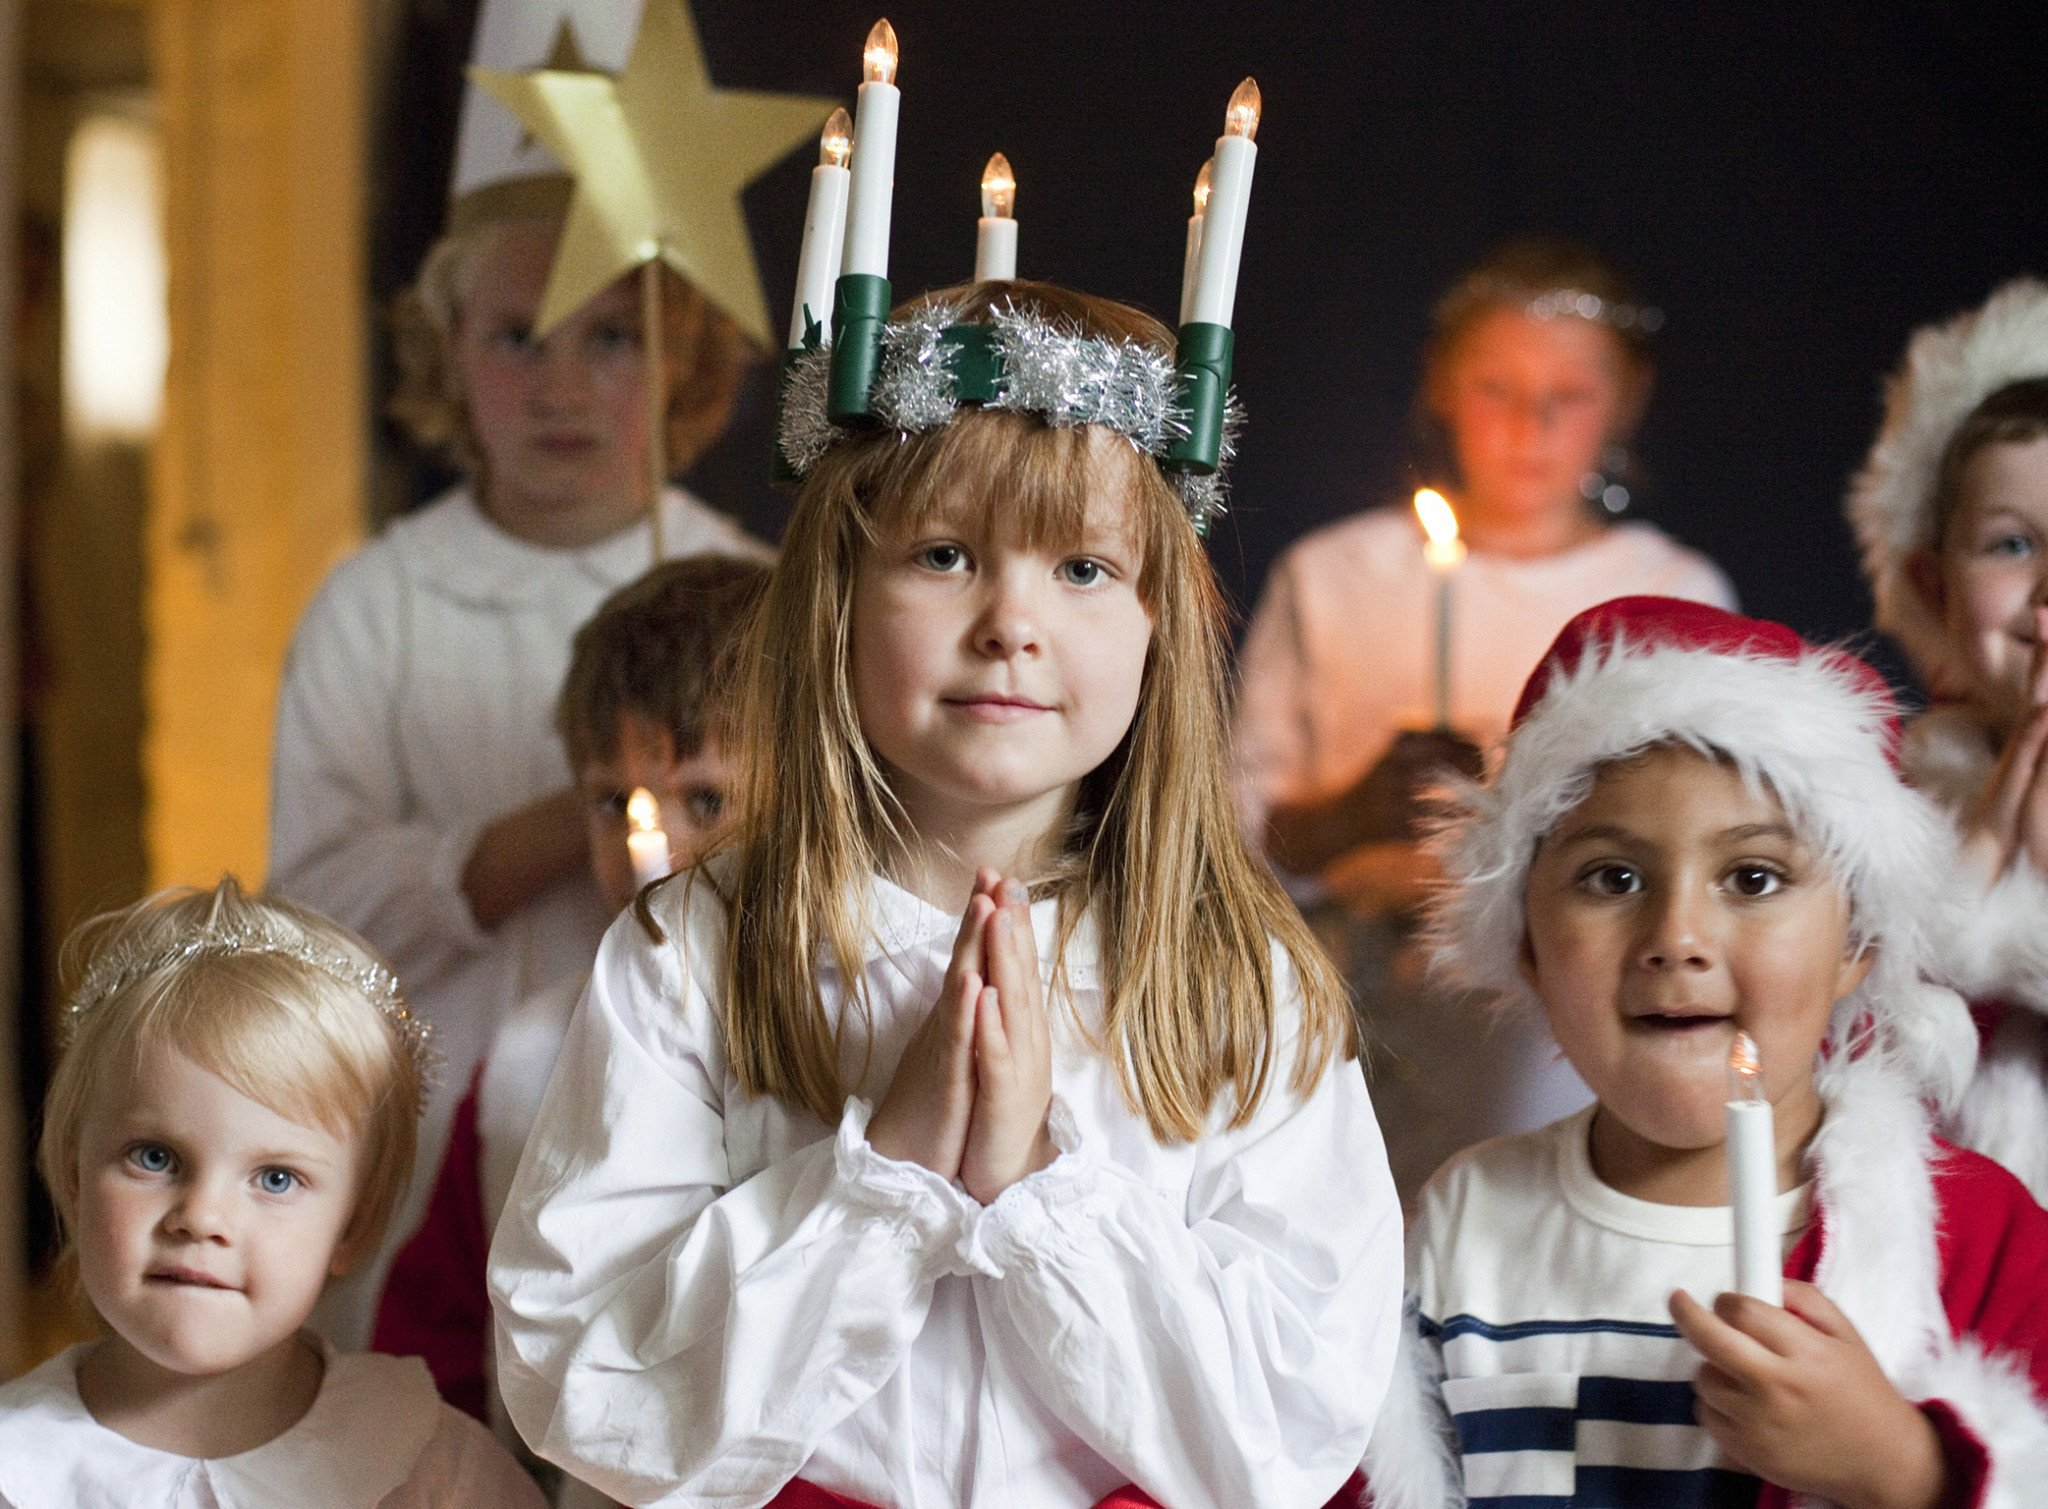 See This Place In Sweden Where Children Wear Light In White Robes And Serve Coffee To Their Parents, They Do It To Celebrate The Patron Saint Of Light